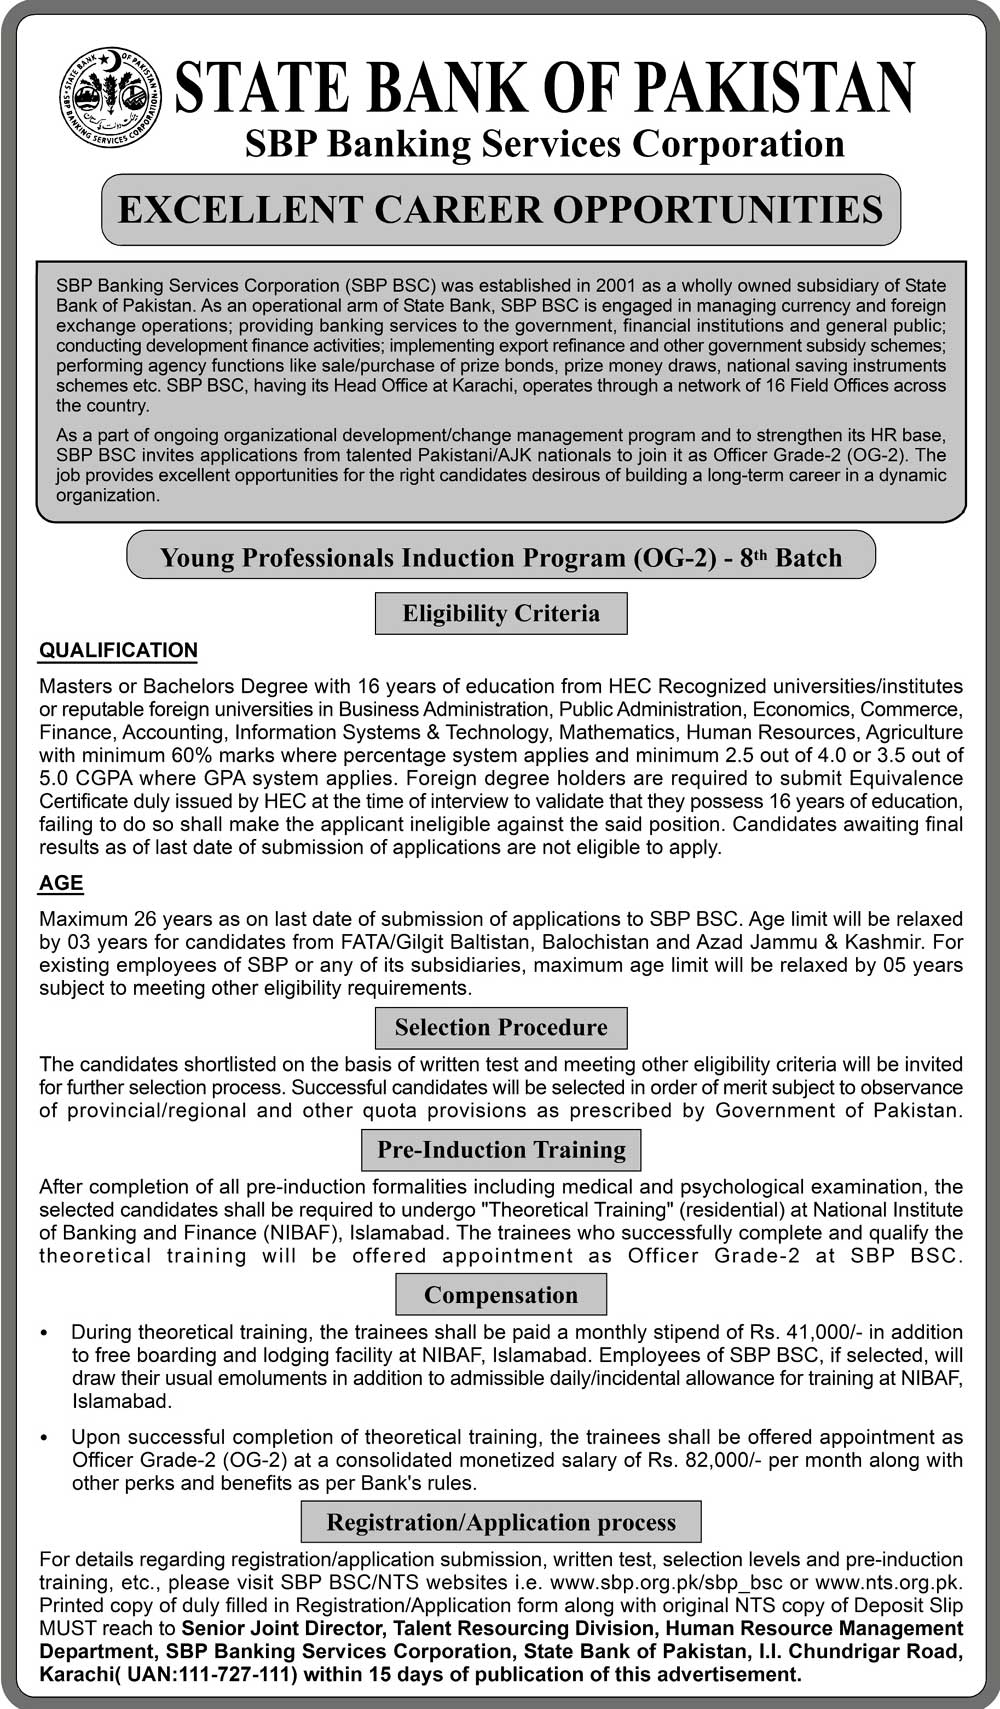 SBP Banking Services Corporation SBP BSC 8th Batch Young Professionals Induction Program OG 2 Jobs Via NTS